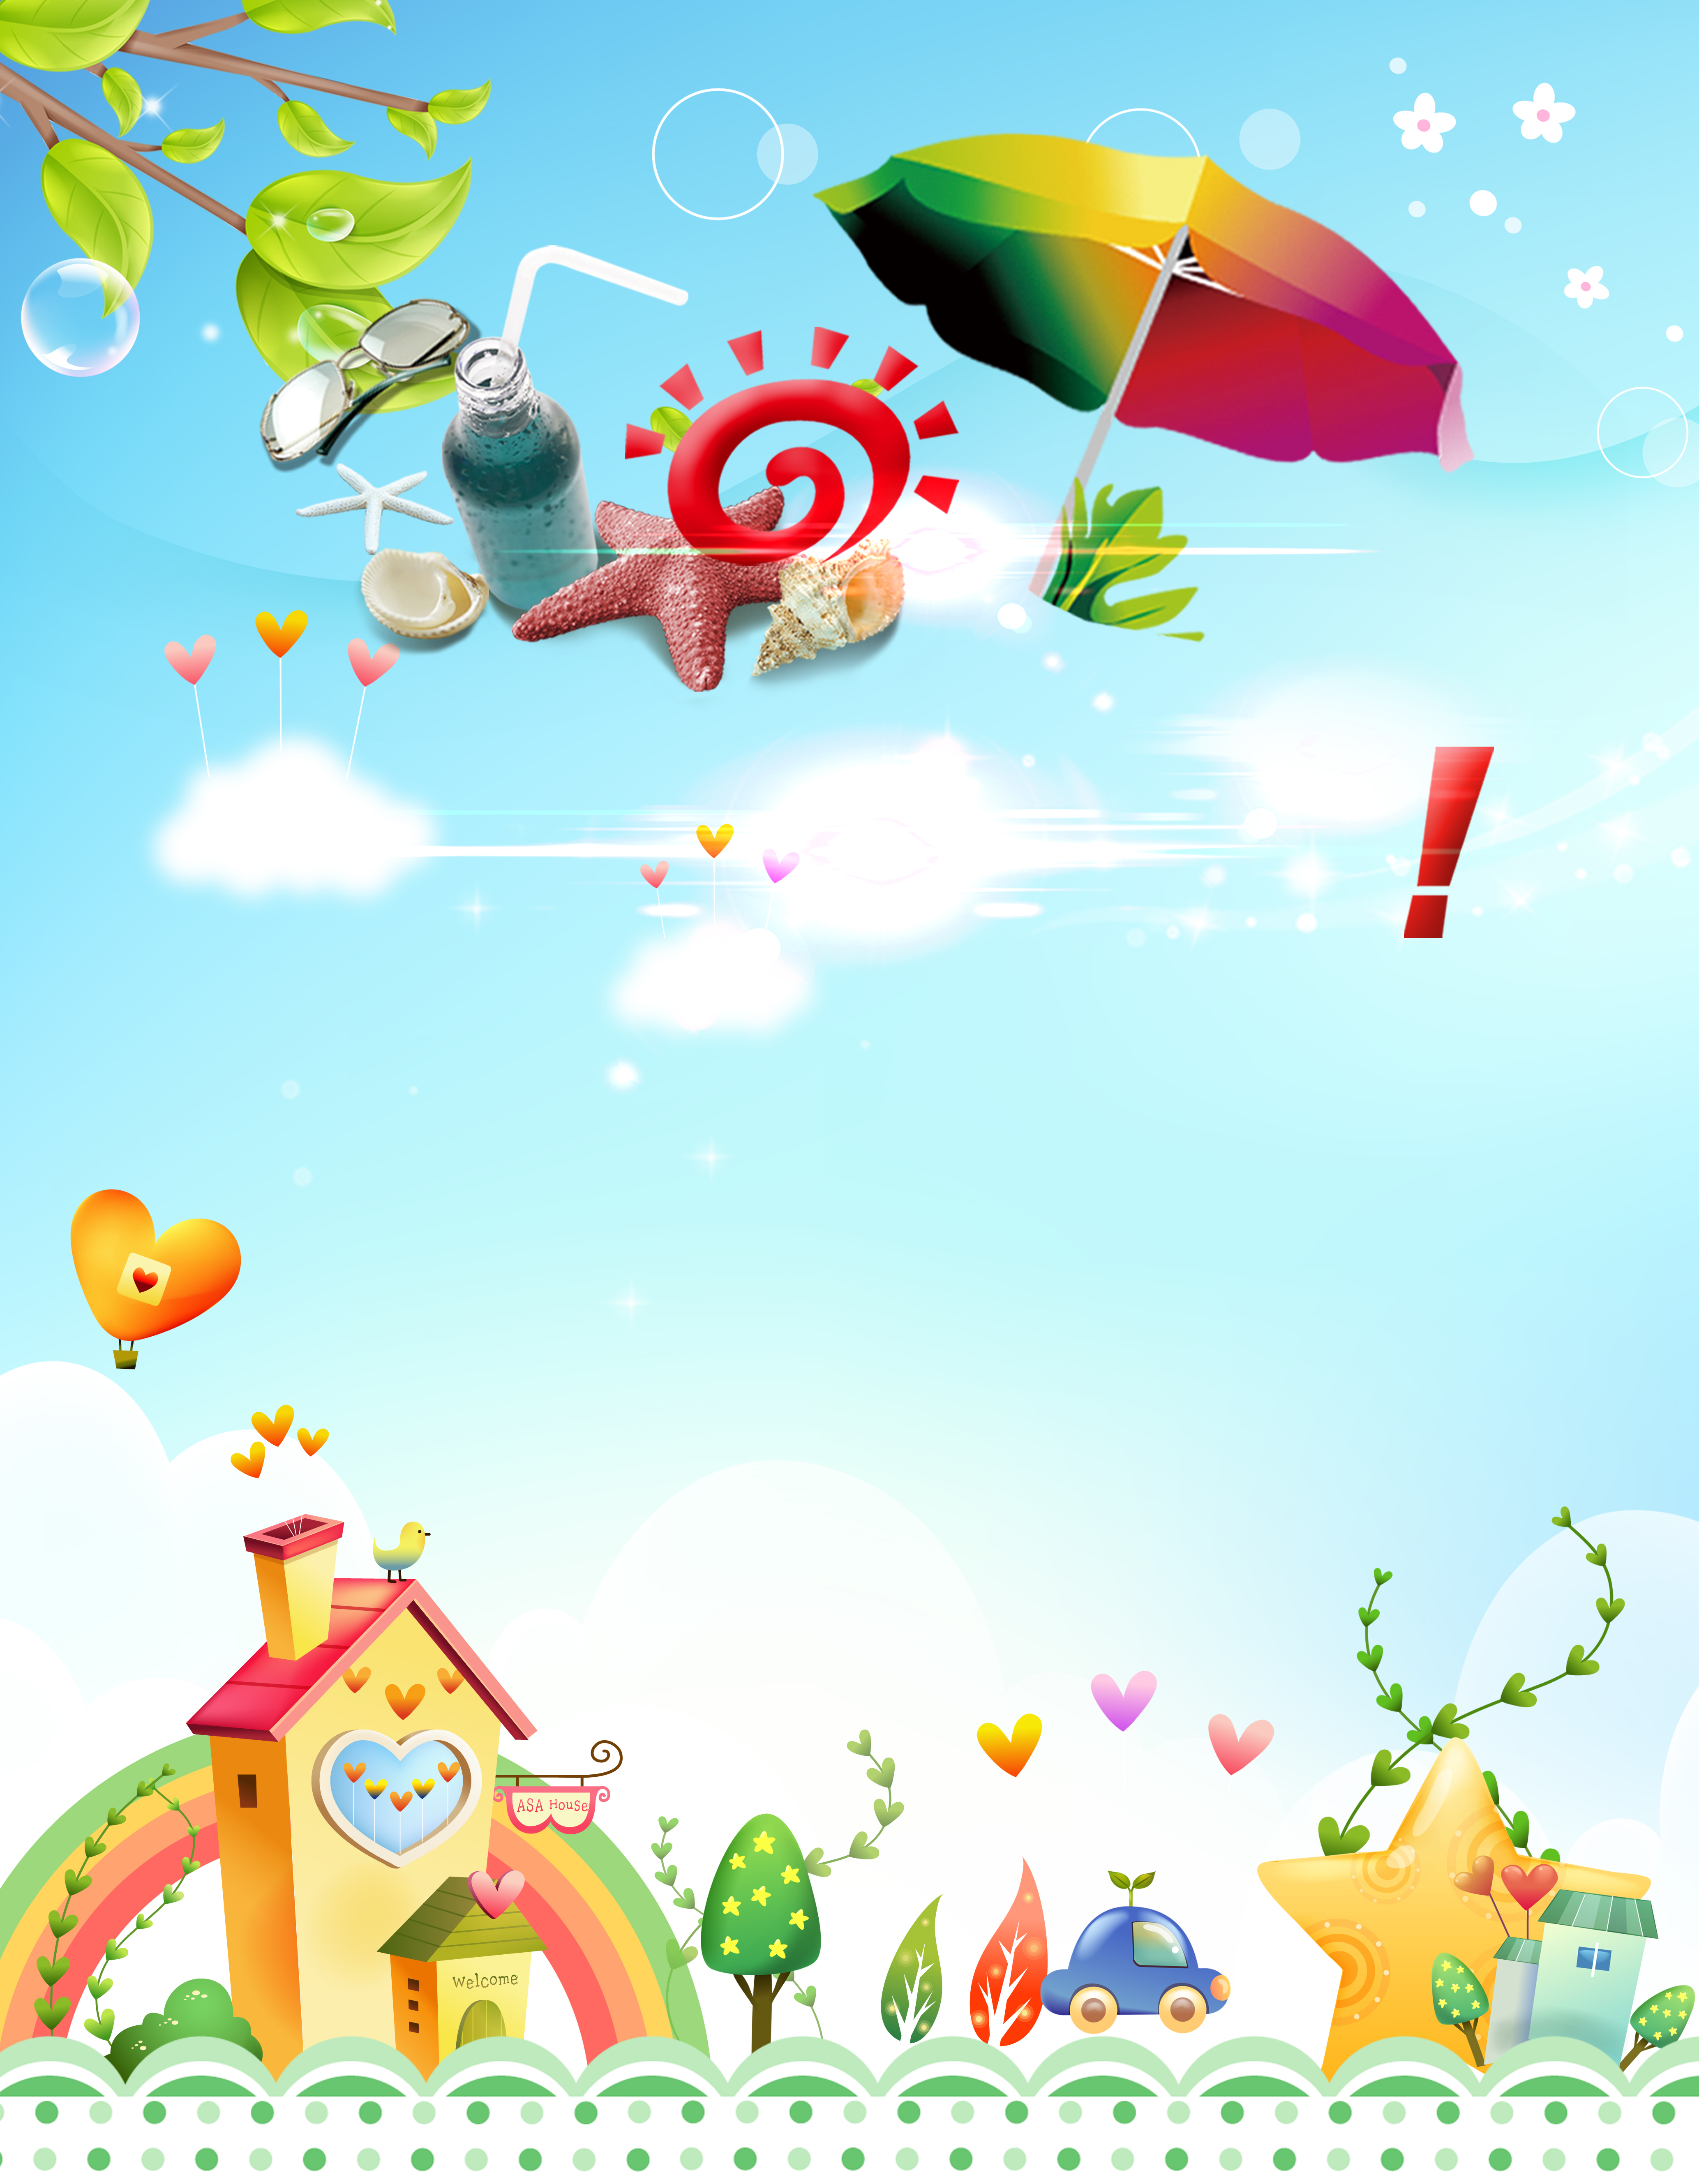 Summer Camp For Children Poster Background Material Child Templates Poster Background Image